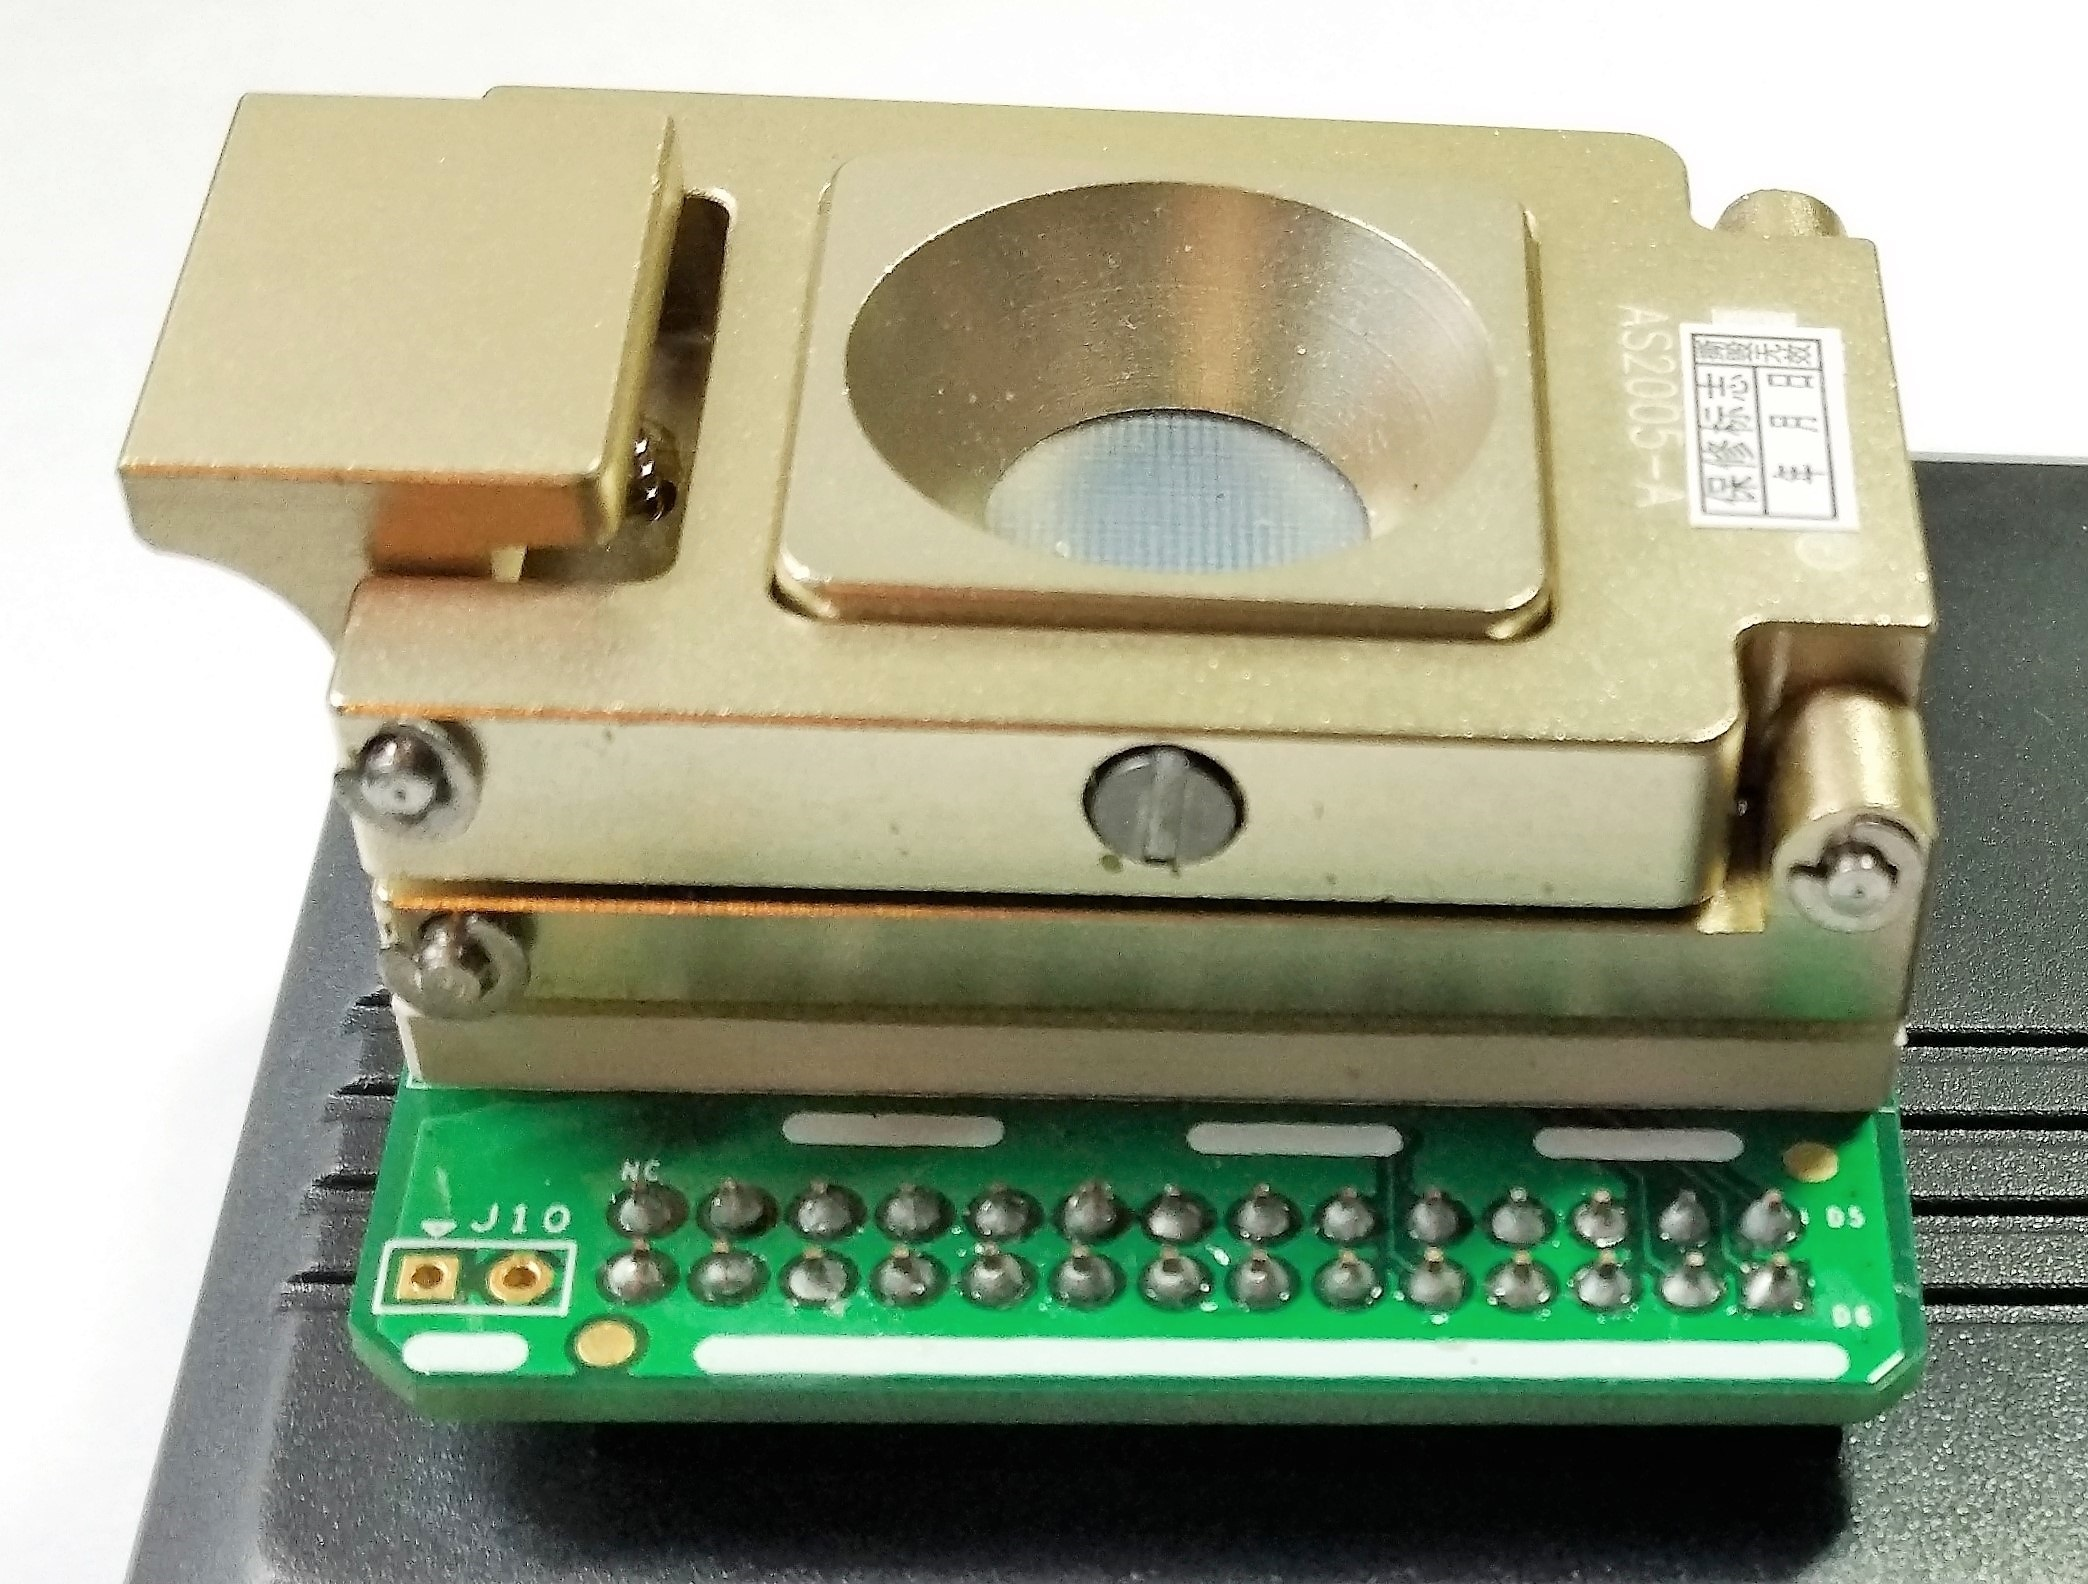 BGA130 programmer socket for FM64D1G12A FM64D1G56A etc.